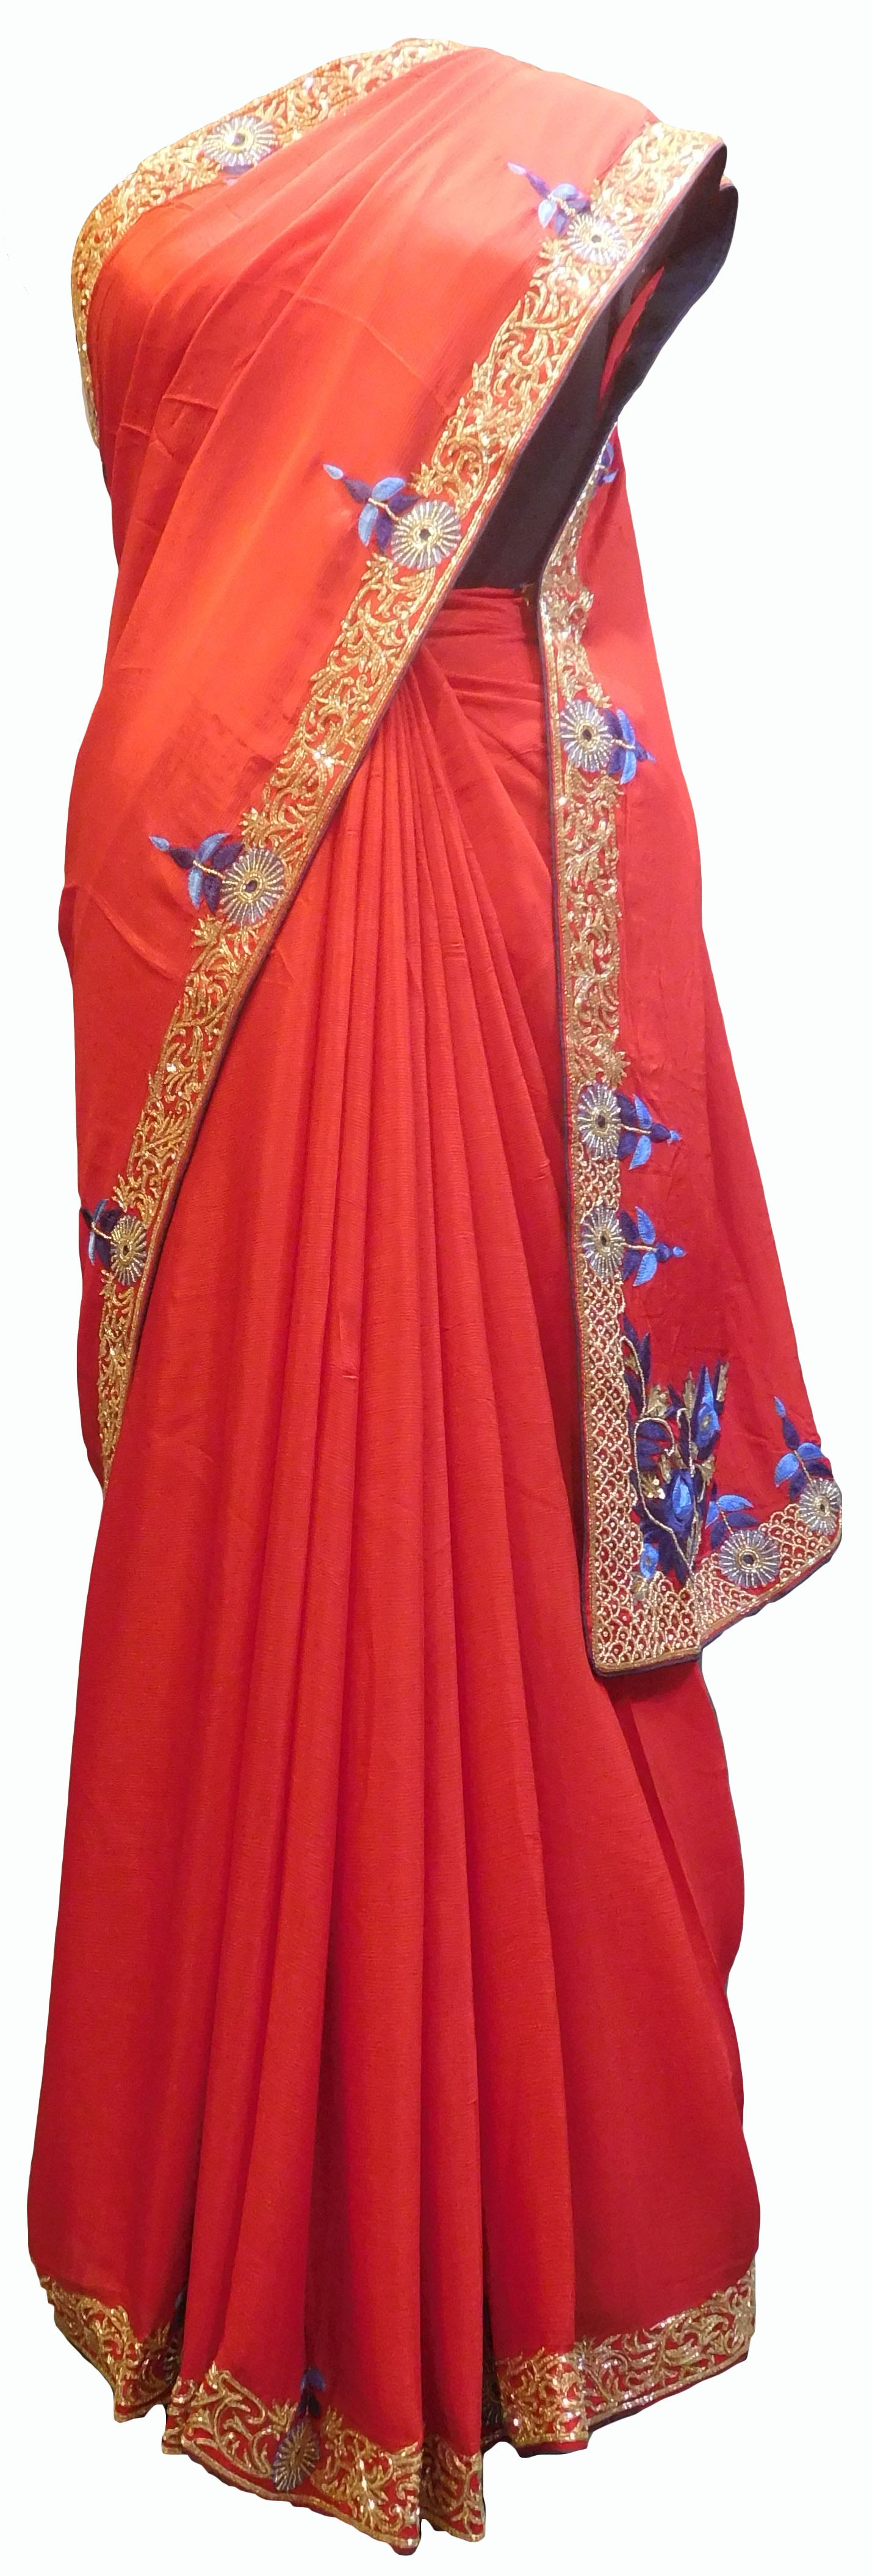 SMSAREE Red Designer Wedding Partywear Crepe (Chinon) Stone Thread Beads Sequence & Cutdana  Hand Embroidery Work Bridal Saree Sari With Blouse Piece E716